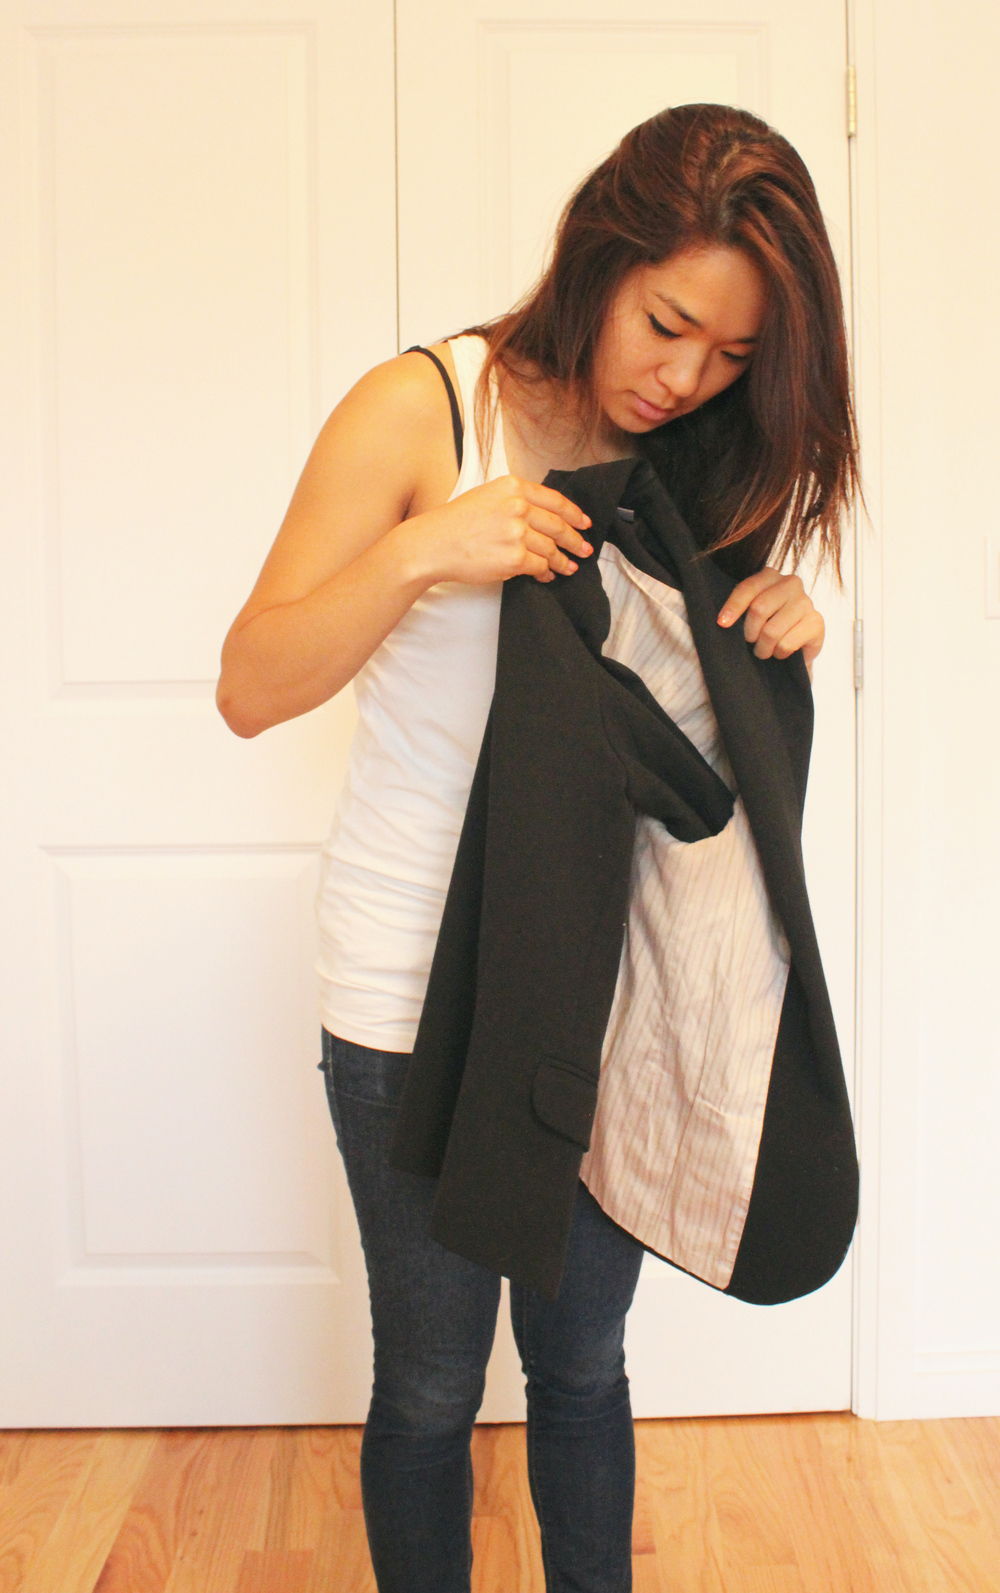 How to fold a blazer: put one of the sleeves into the other, it helps retain the shape